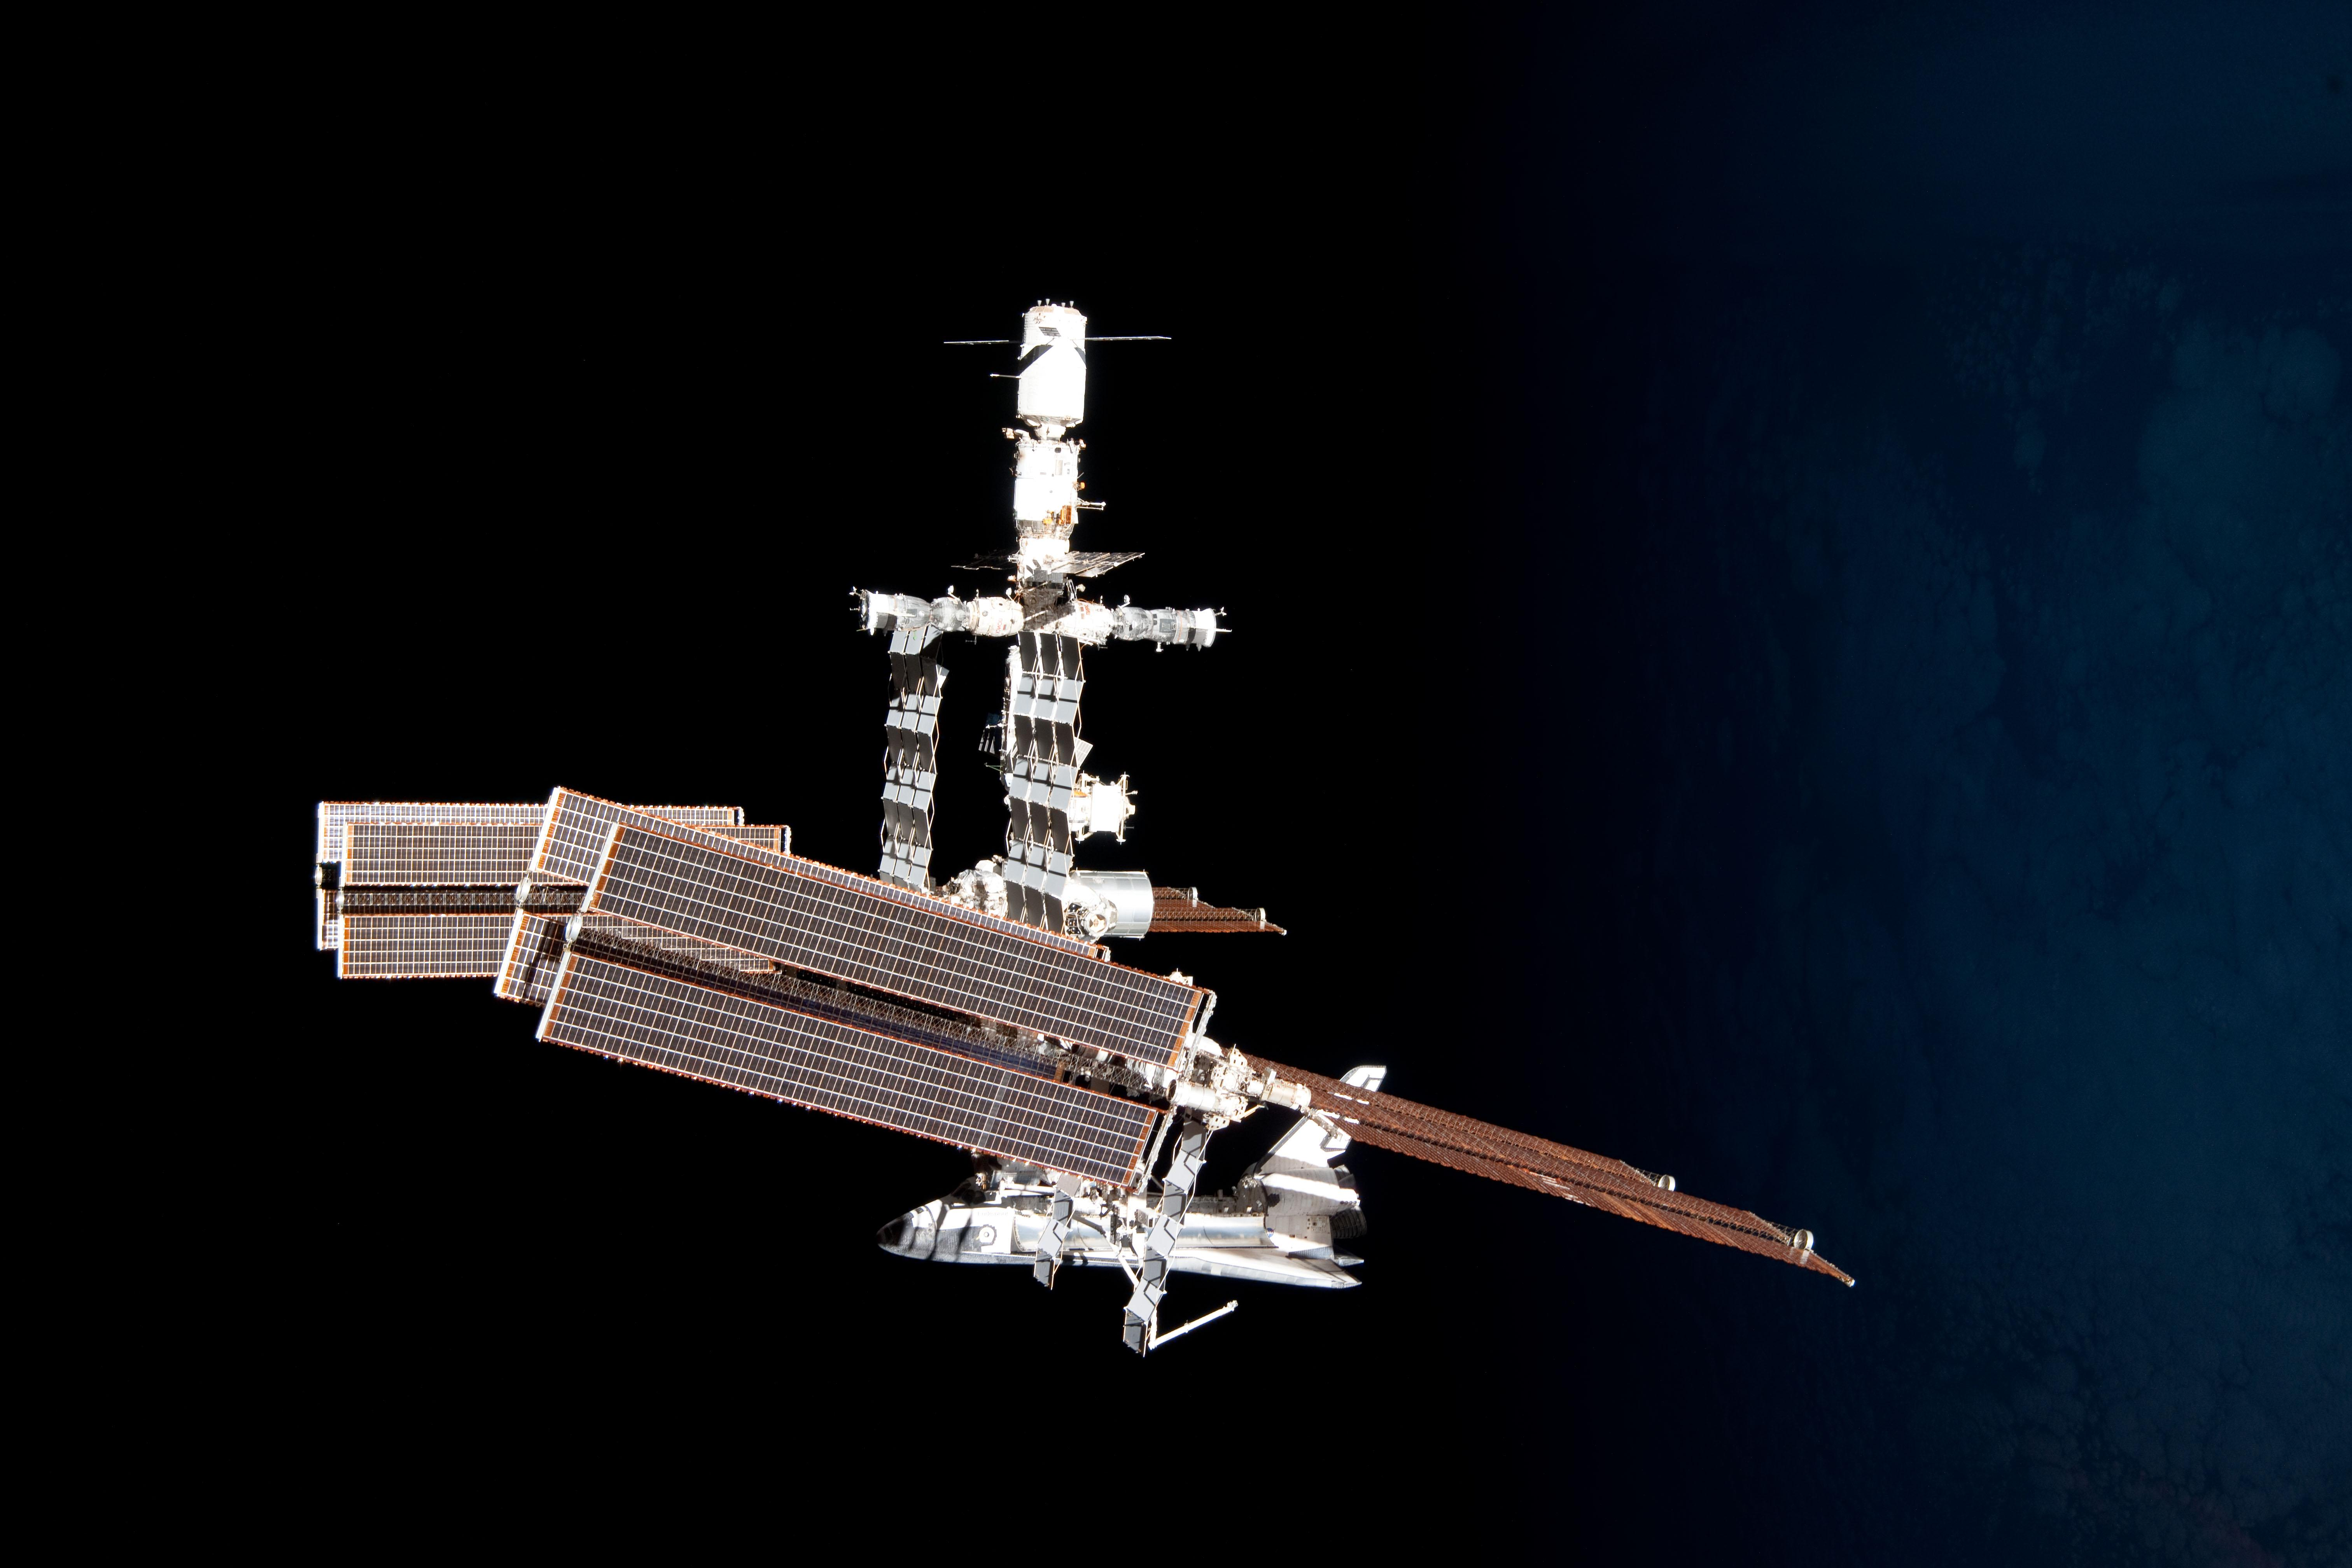 international space station shuttle - photo #6